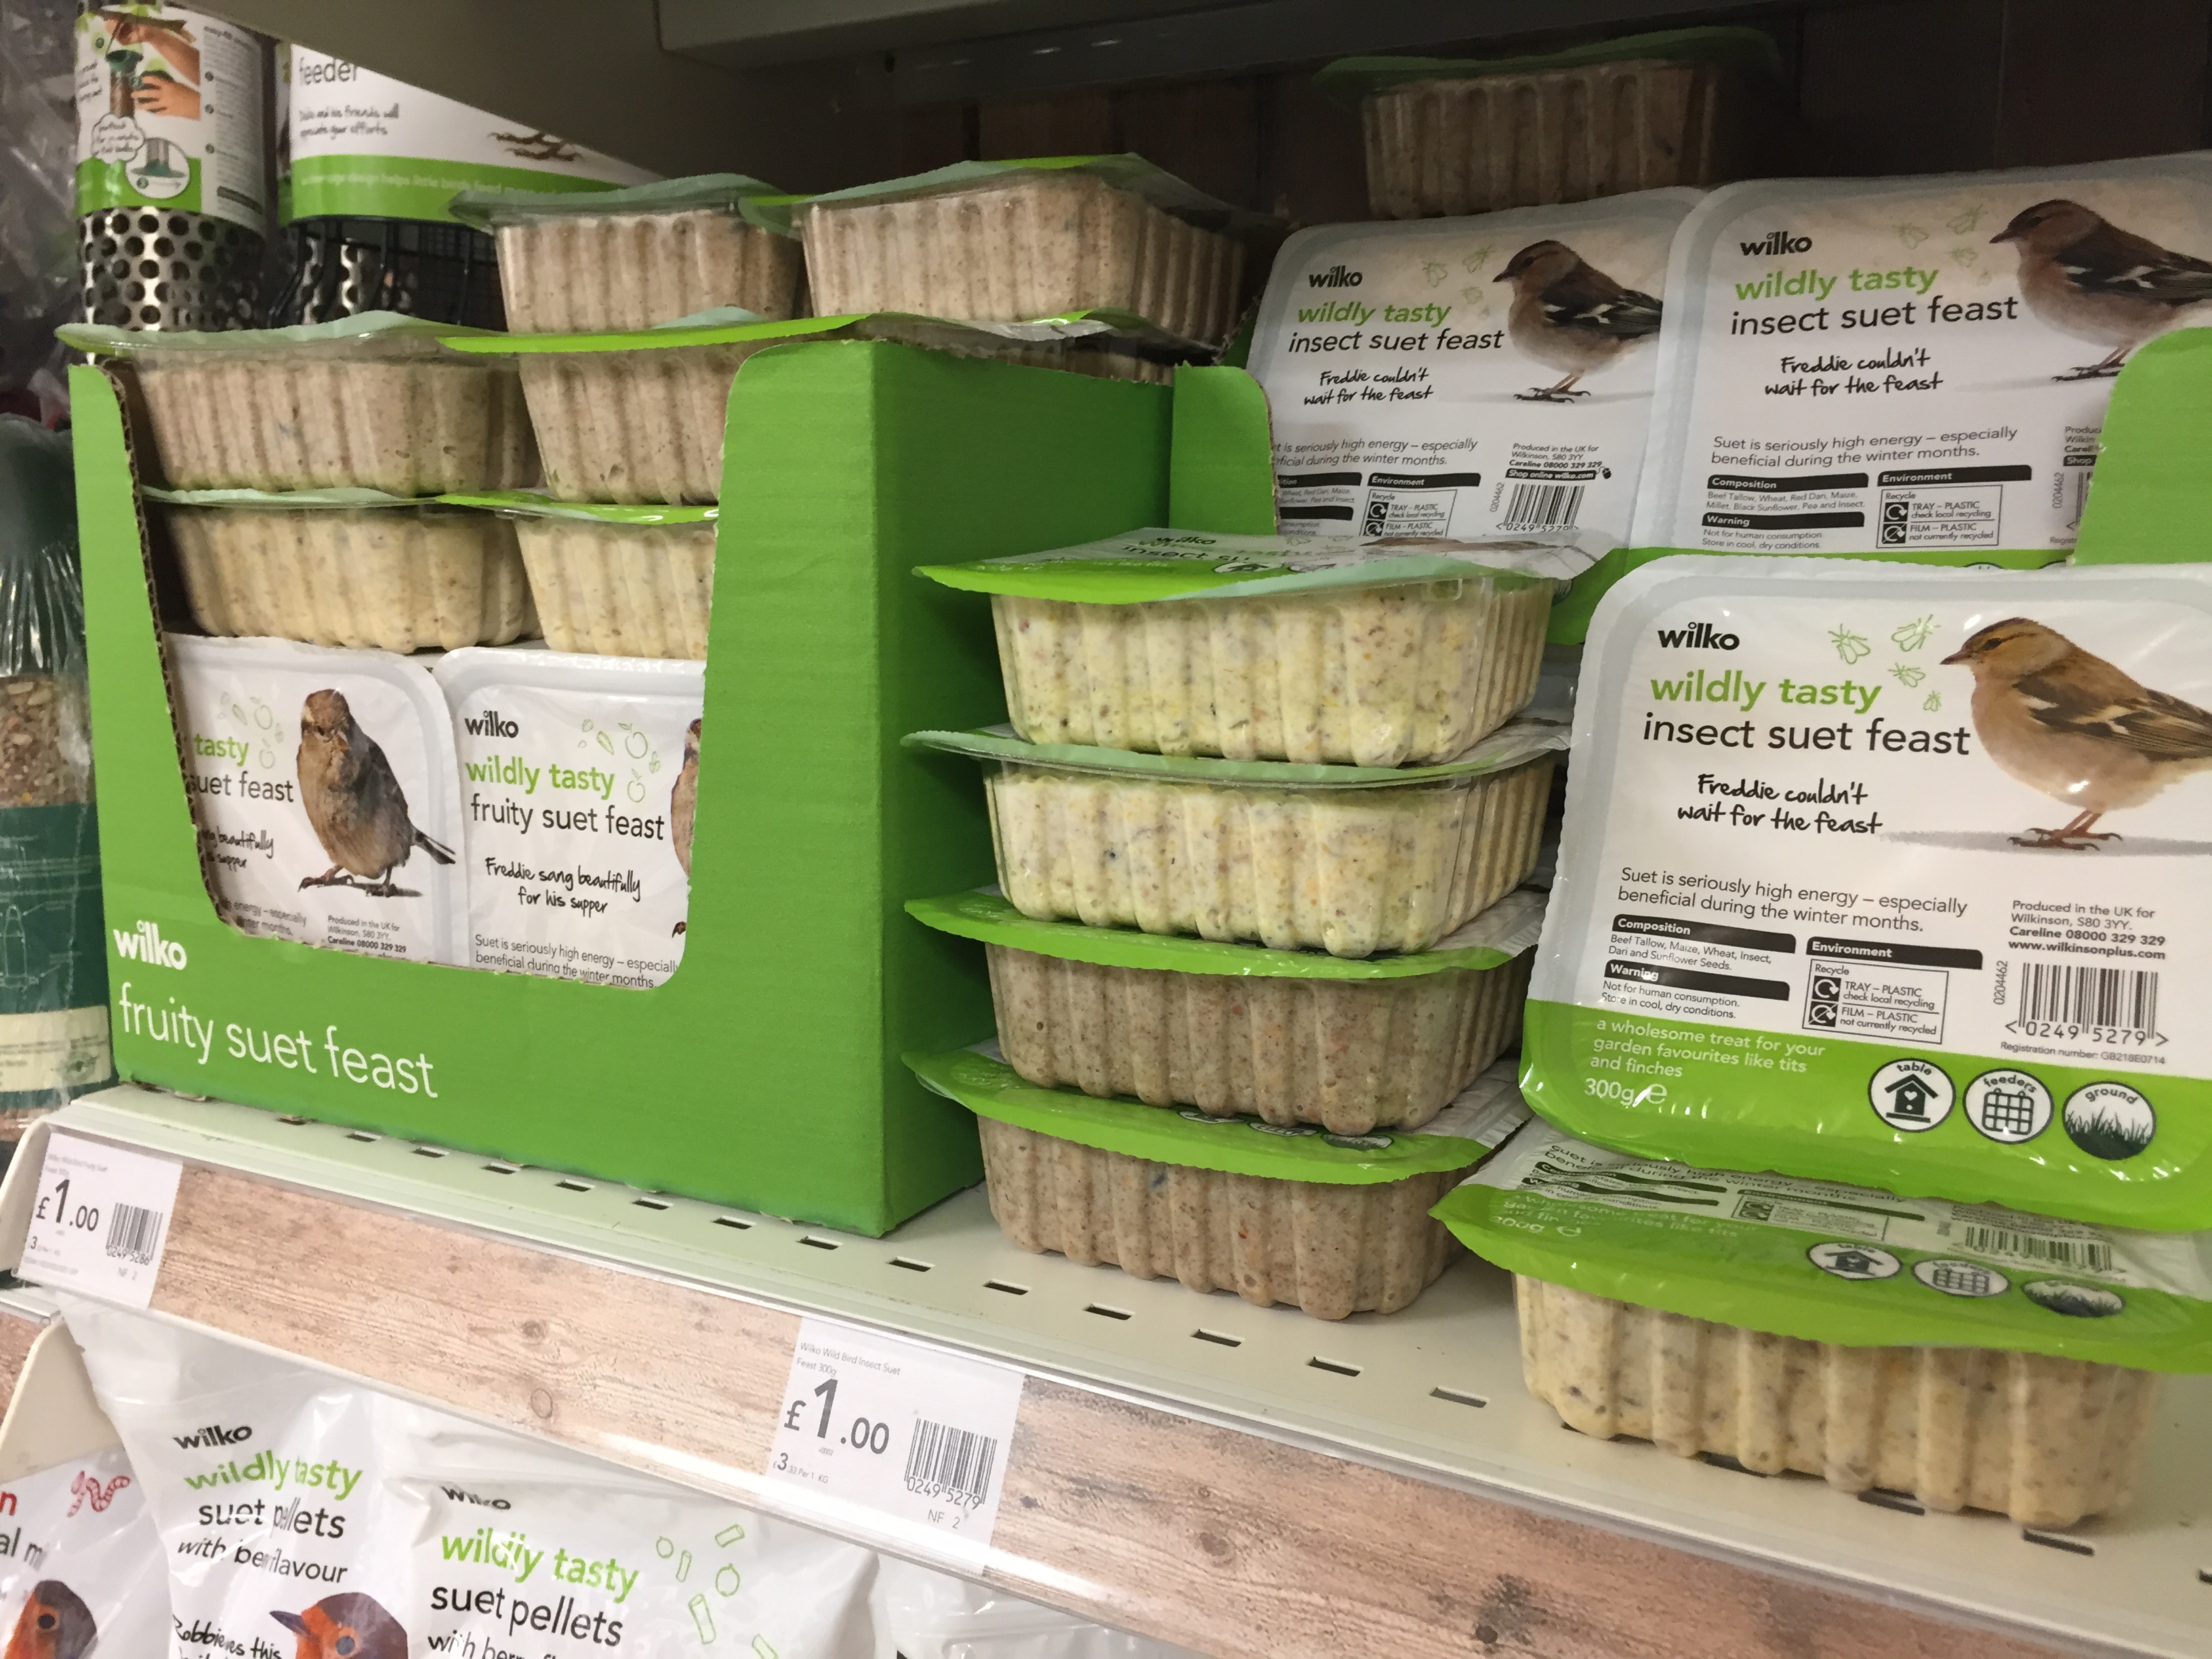 Insect suet feast on sale for £1 in Wilko (PA)